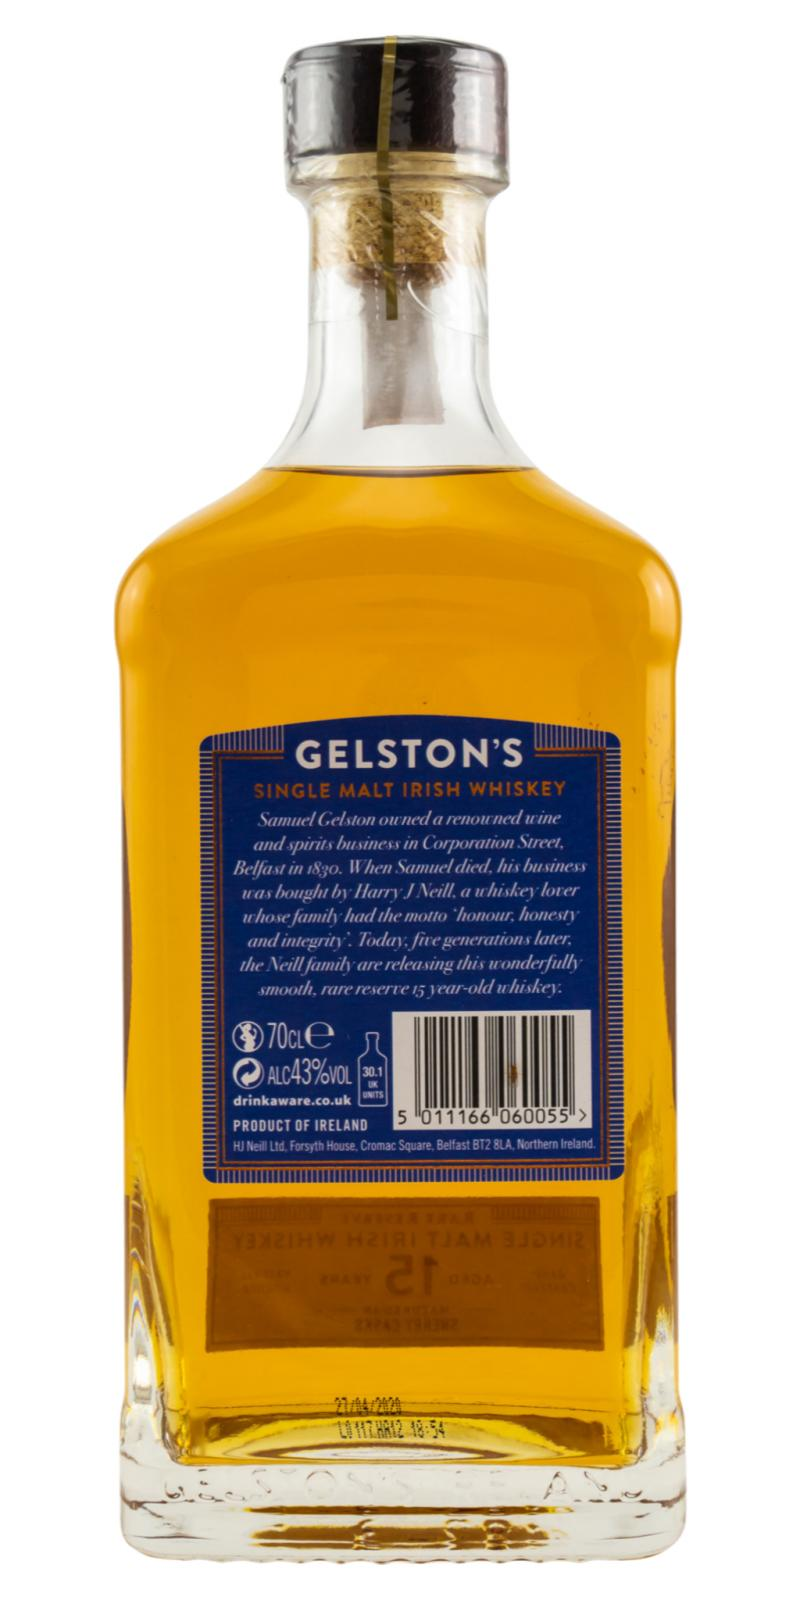 Gelston's 15-year-old